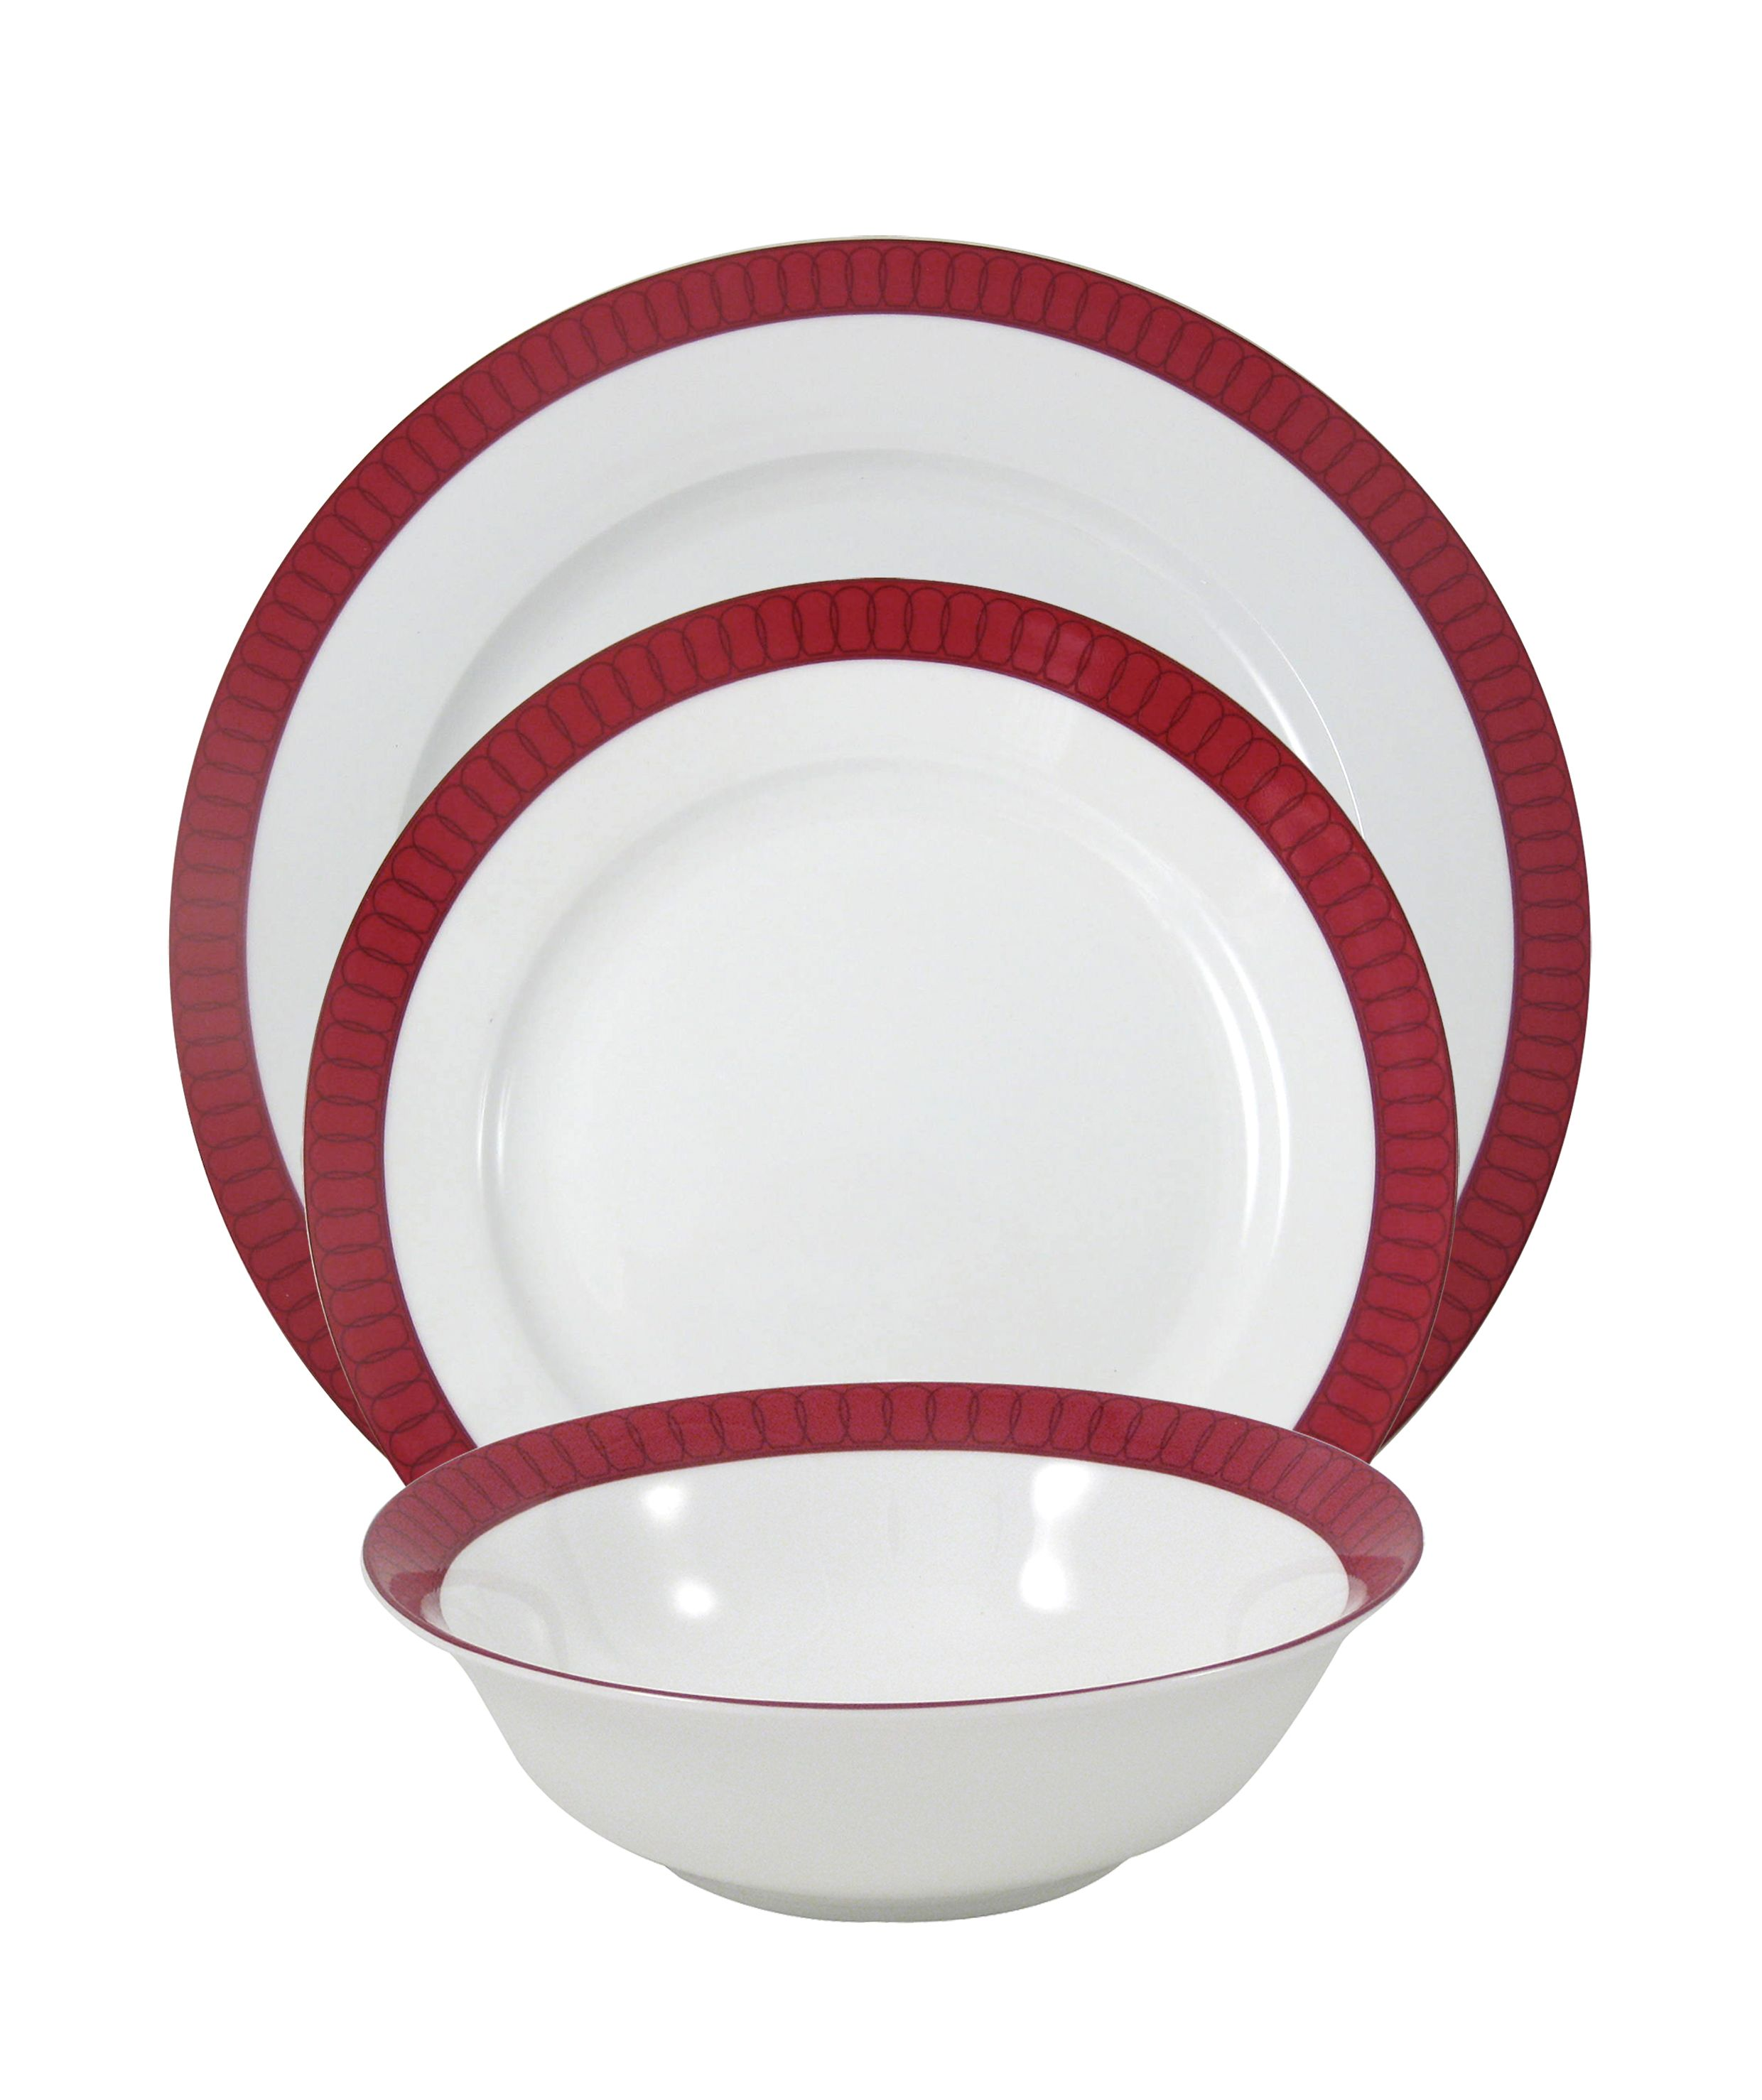 aynsley madison 12 piece dinner set aynsley madison 12pce set is part